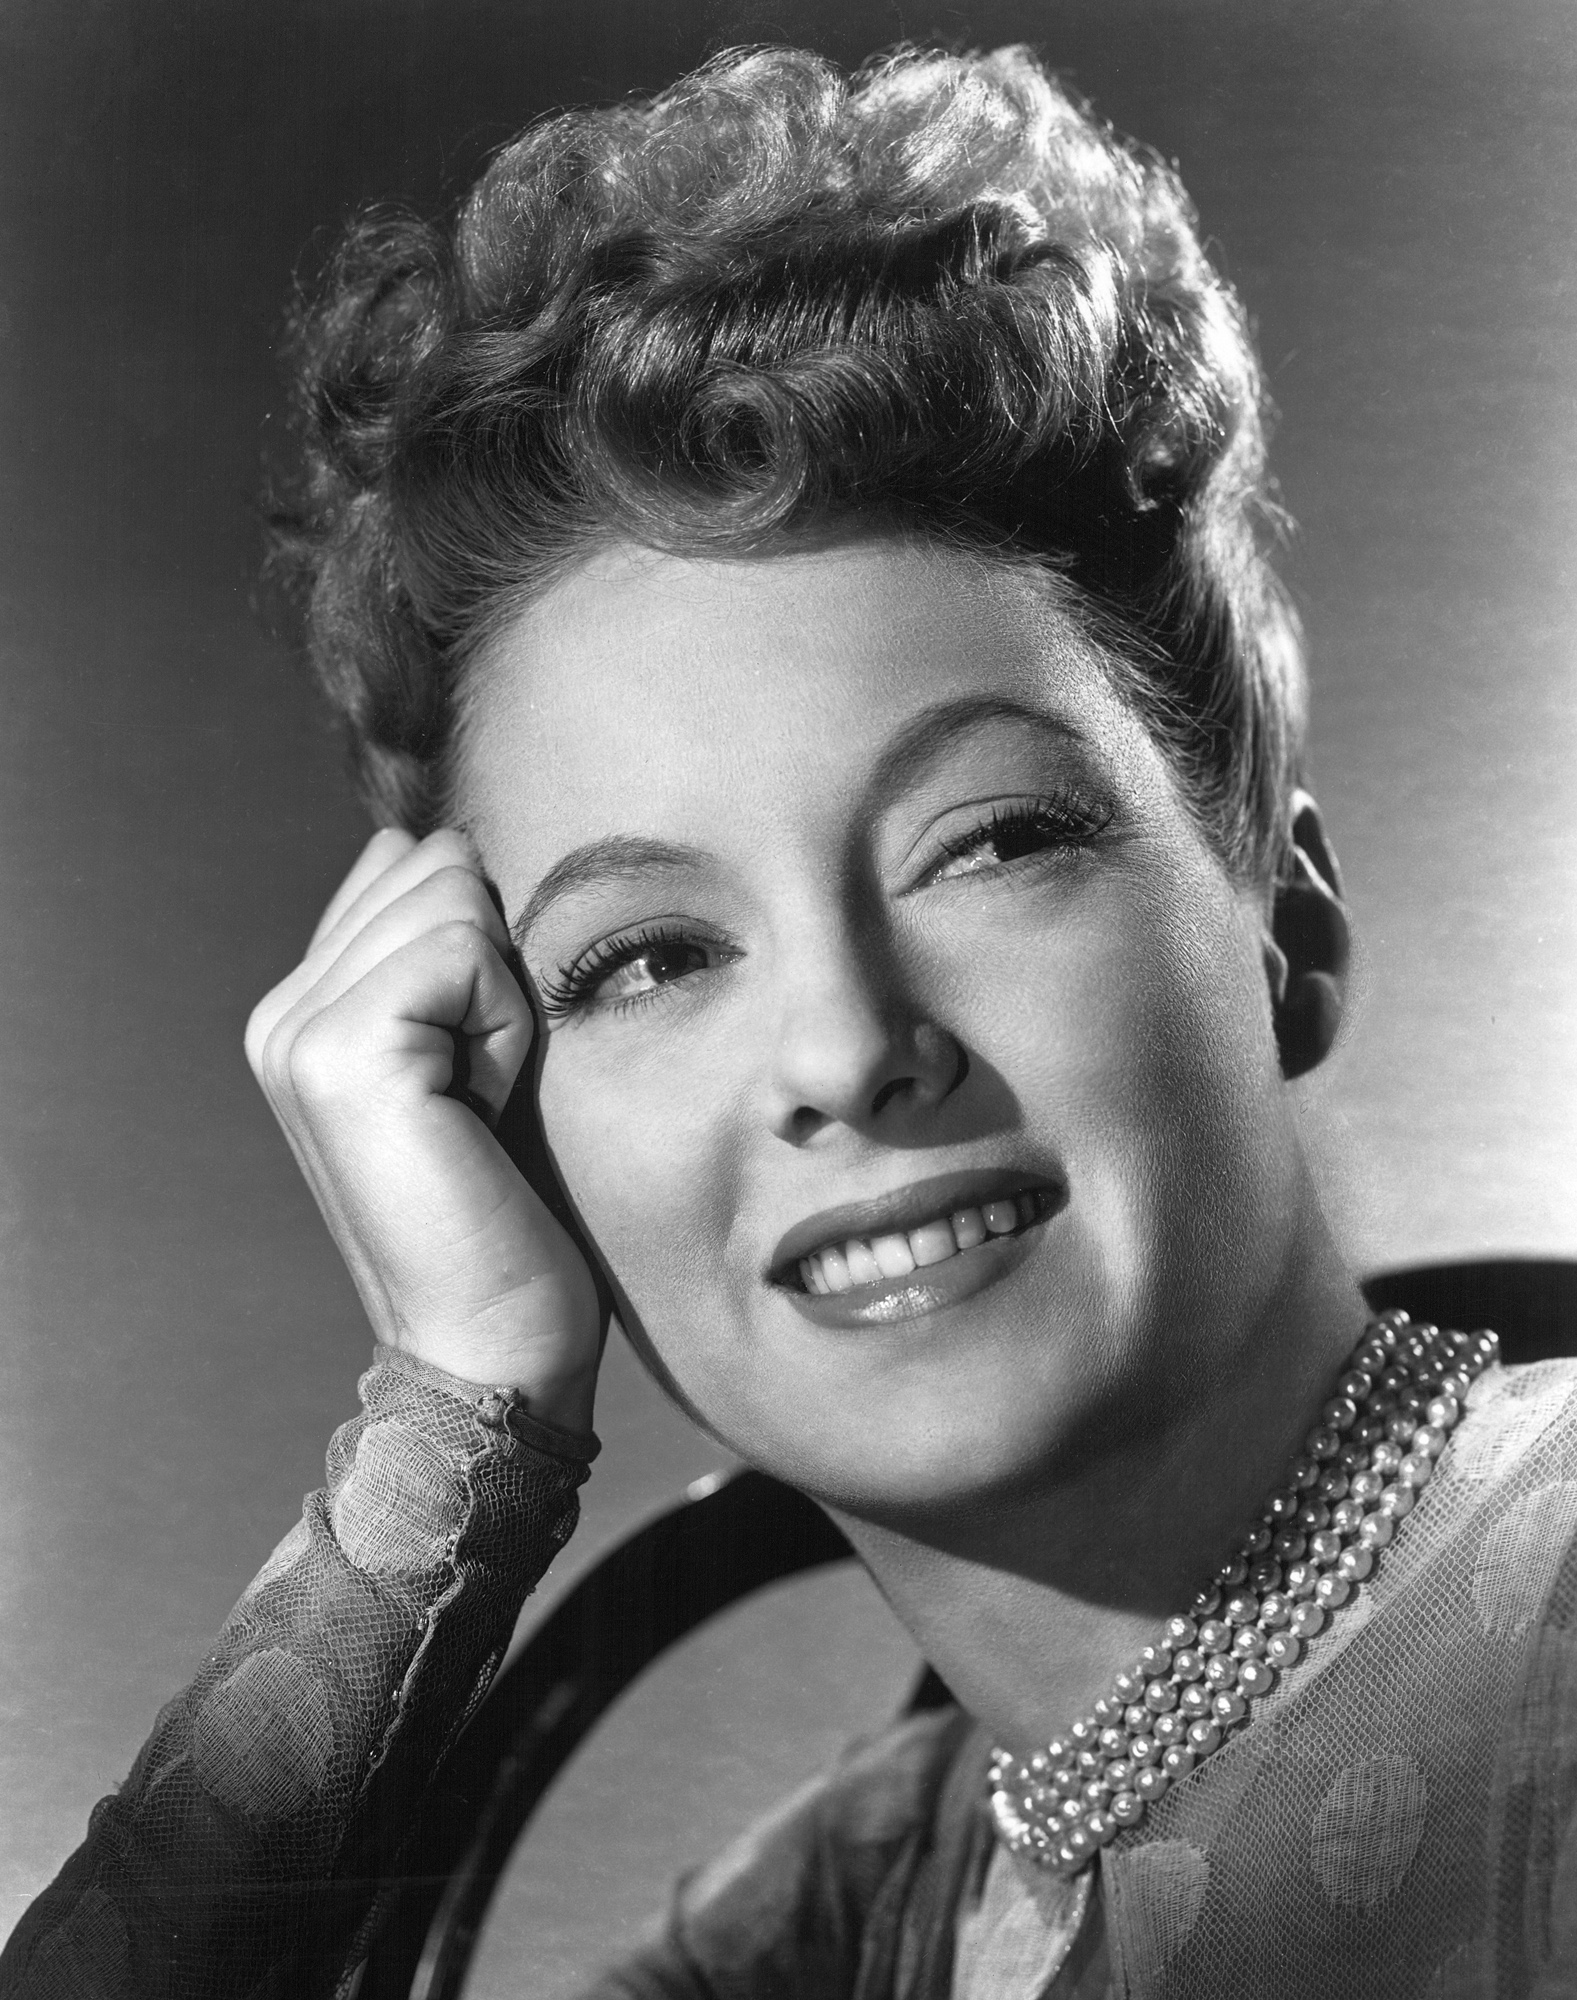 evelyn keyes graveevelyn keyes actress, evelyn keyes imdb, evelyn keyes judge, evelyn keyes movies, evelyn keyes spouse, evelyn keyes grave, evelyn keyes images, evelyn keyes relationships, evelyn keyes books, evelyn keyes autobiography, evelyn keyes, evelyn keyes foot, evelyn keyes biography, evelyn keyes filmography, evelyn keyes measurements, evelyn keyes obituary, evelyn keyes pablo huston, evelyn keyes hot, evelyn keyes and artie shaw, evelyn keyes wikipedia